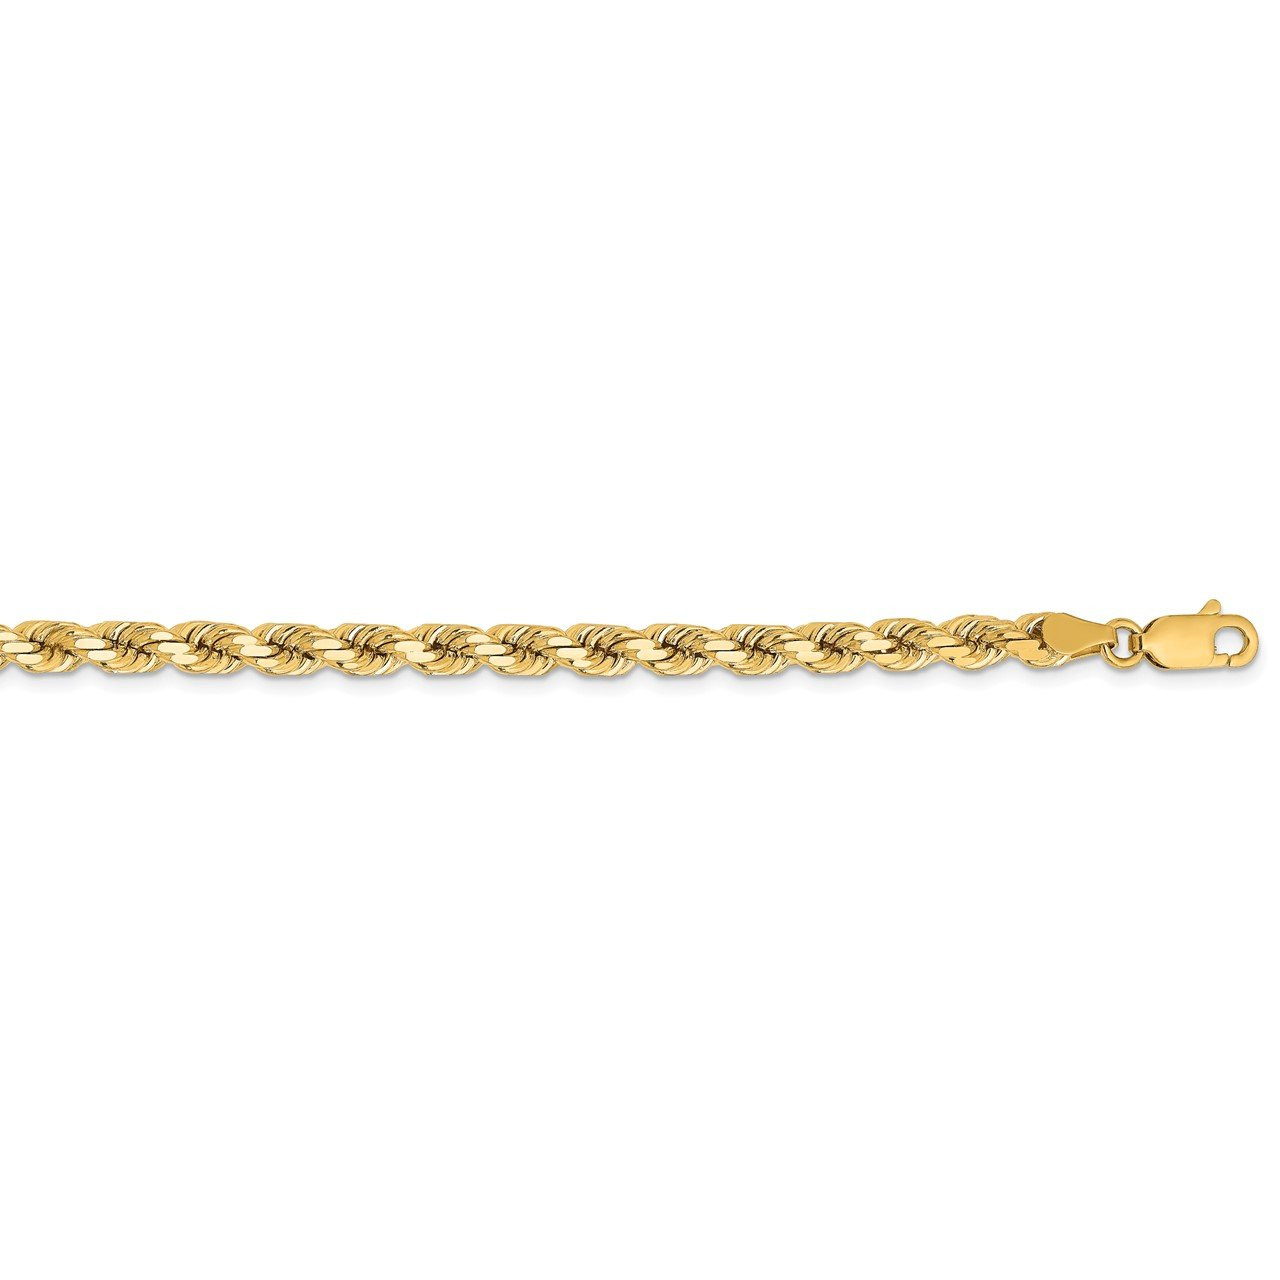 14K 4.25mm D/C Rope with Lobster Clasp Chain